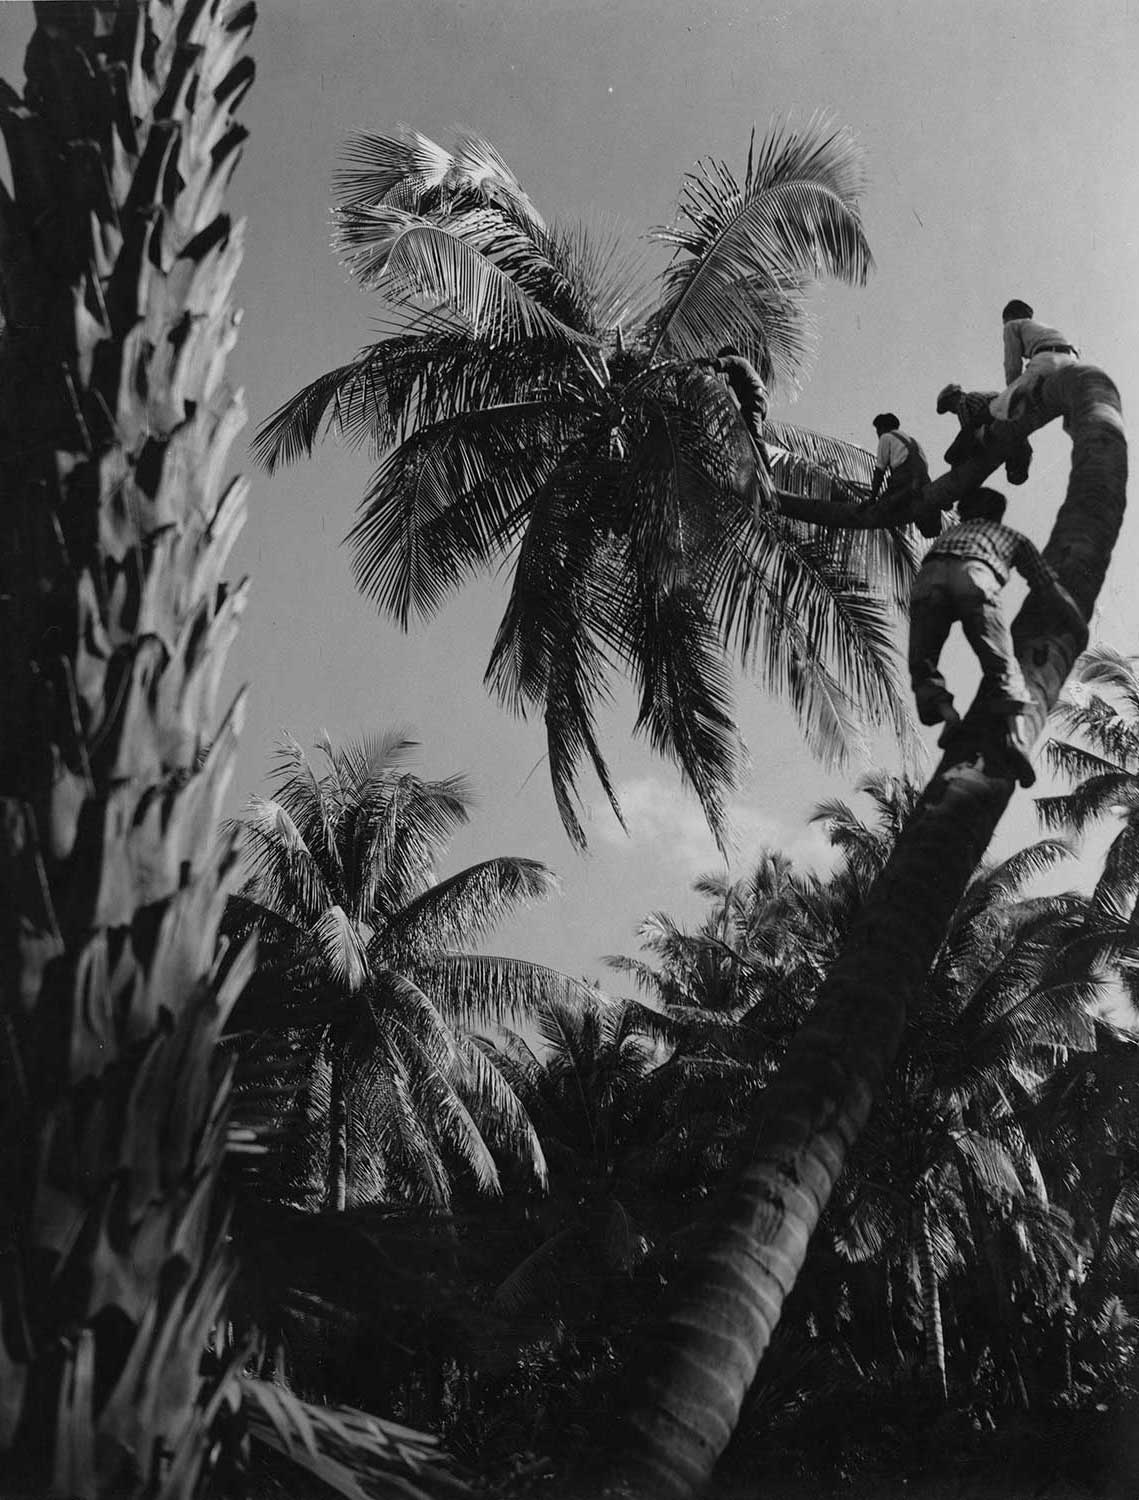 Black and white developed photo of coconut farmers climbing up trees.